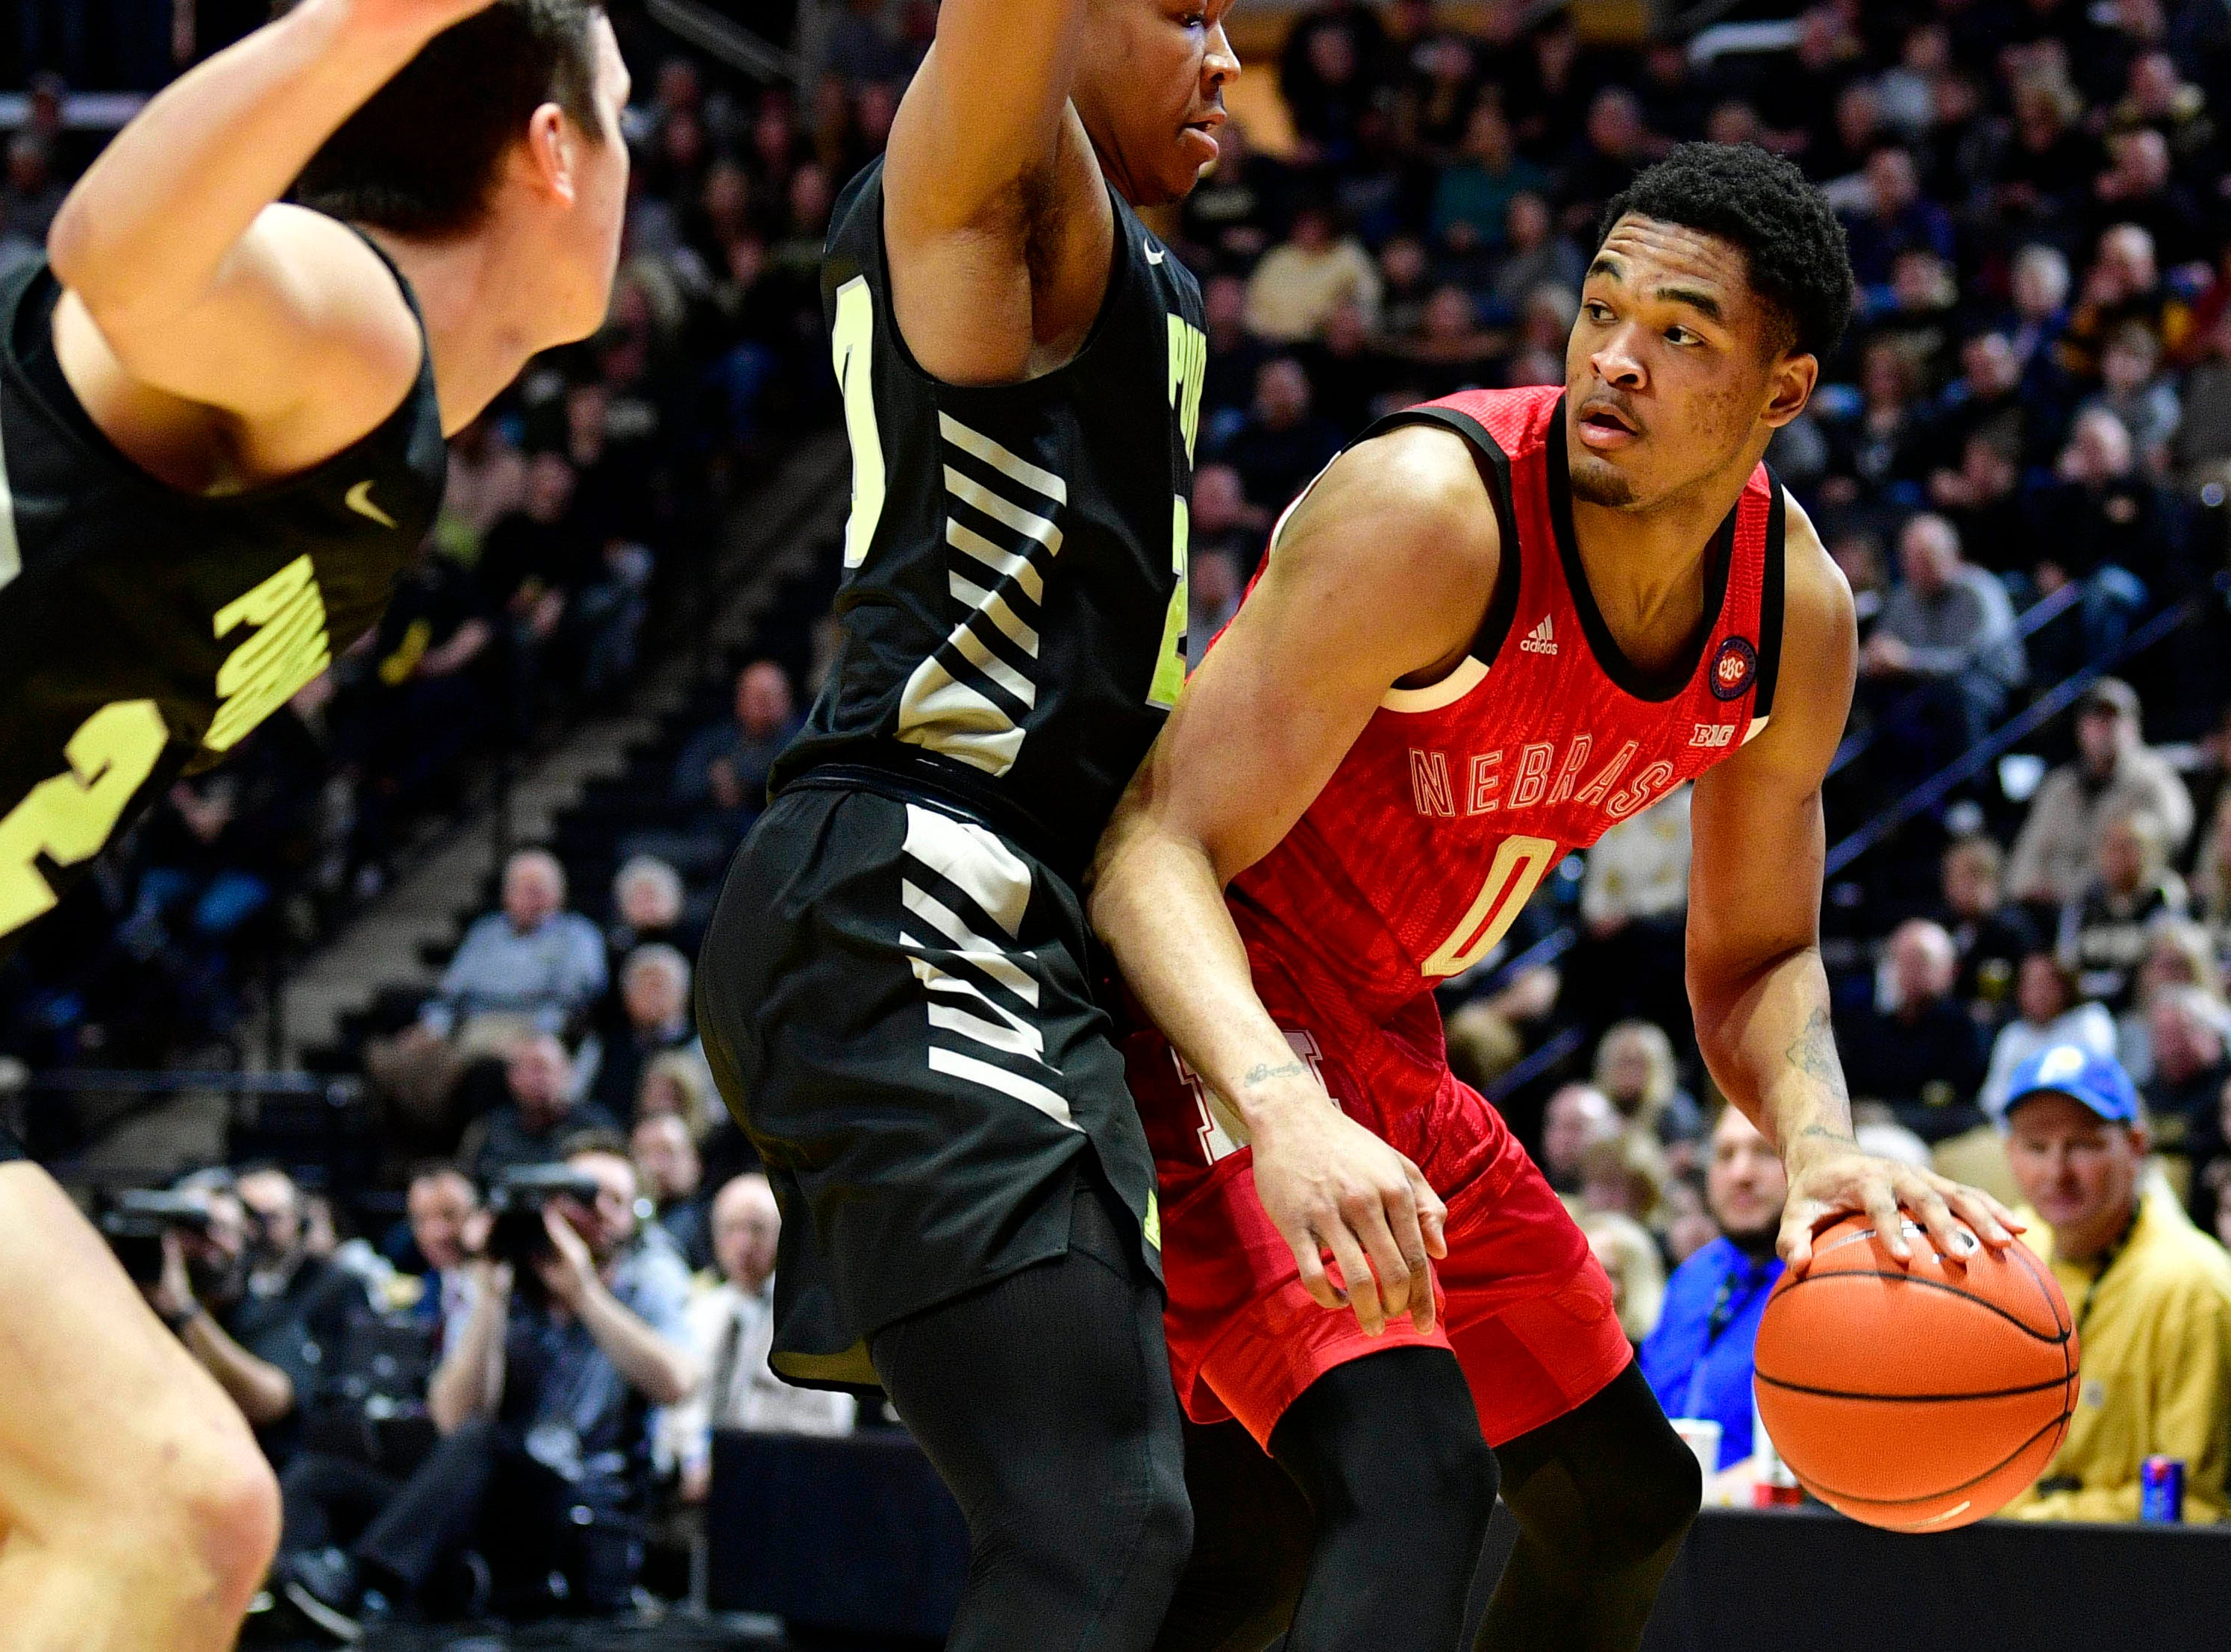 Feb 9, 2019; West Lafayette, IN, USA; Nebraska Cornhuskers guard James Palmer Jr. (0) attempts to keep the ball away from Purdue Boilermakers guard Nojel Eastern (20) during the first half of the game at Mackey Arena. Mandatory Credit: Marc Lebryk-USA TODAY Sports